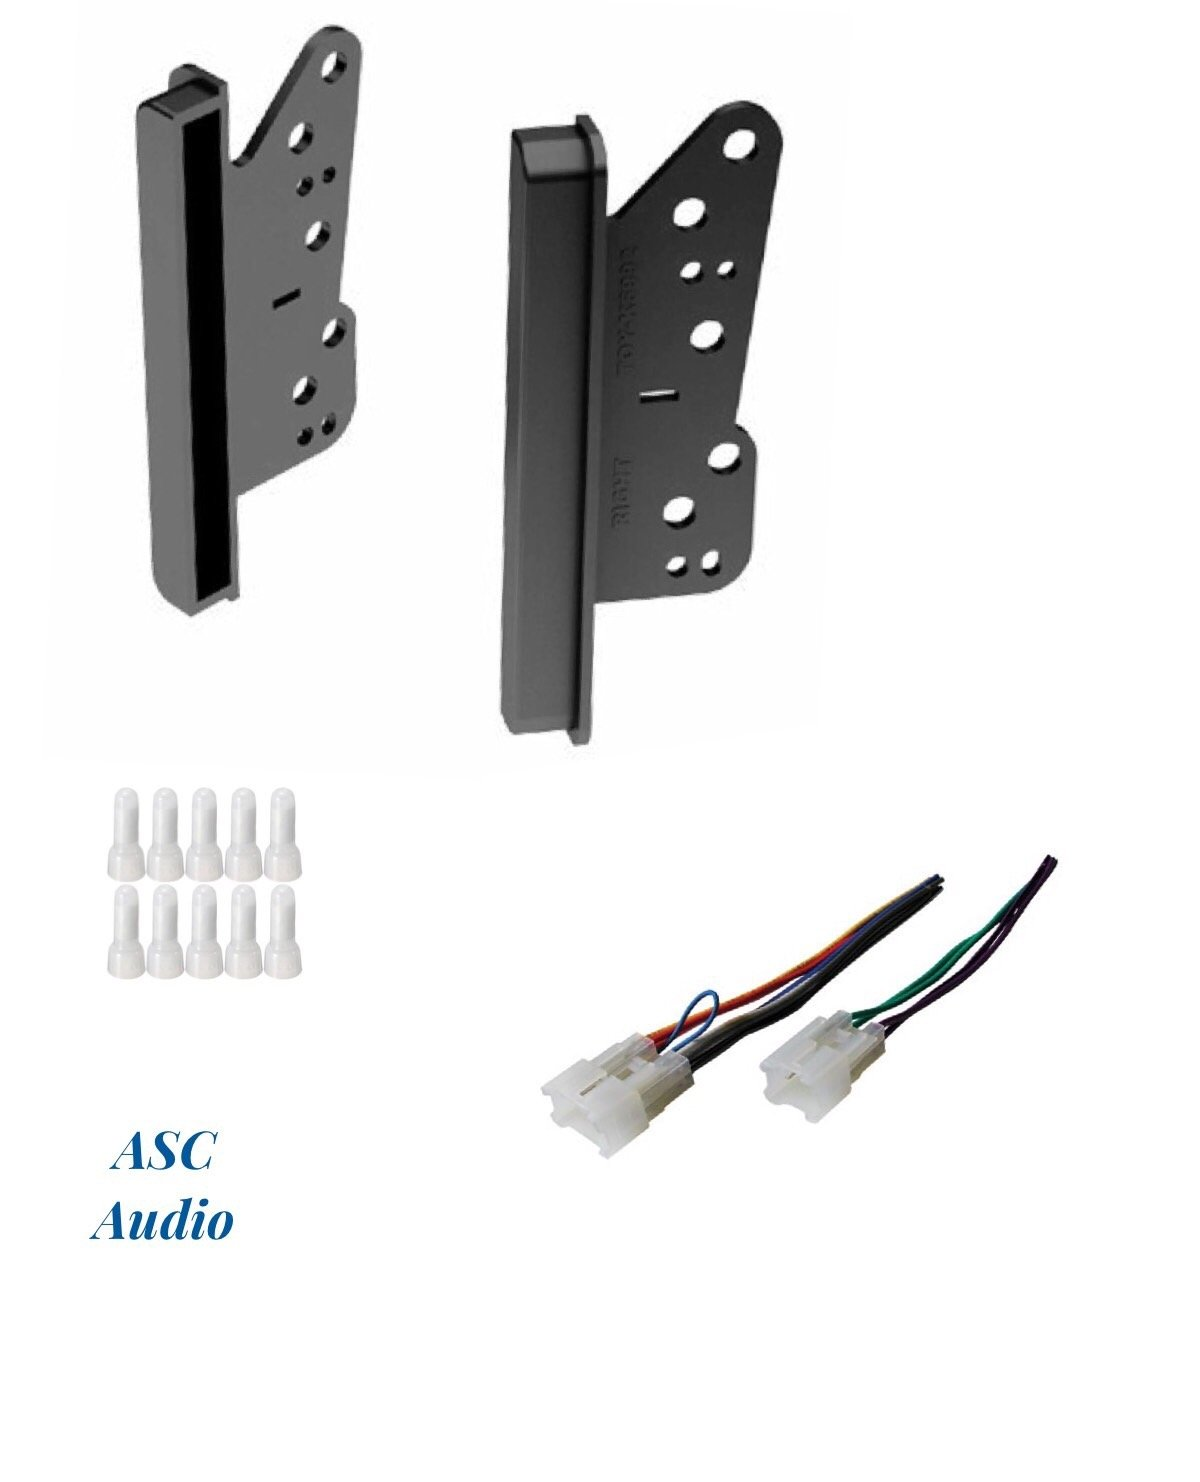 ASC Double Din Car Stereo Dash Kit and Wire Harness for some Scion Toyota - Compatible Vehicles Listed Below